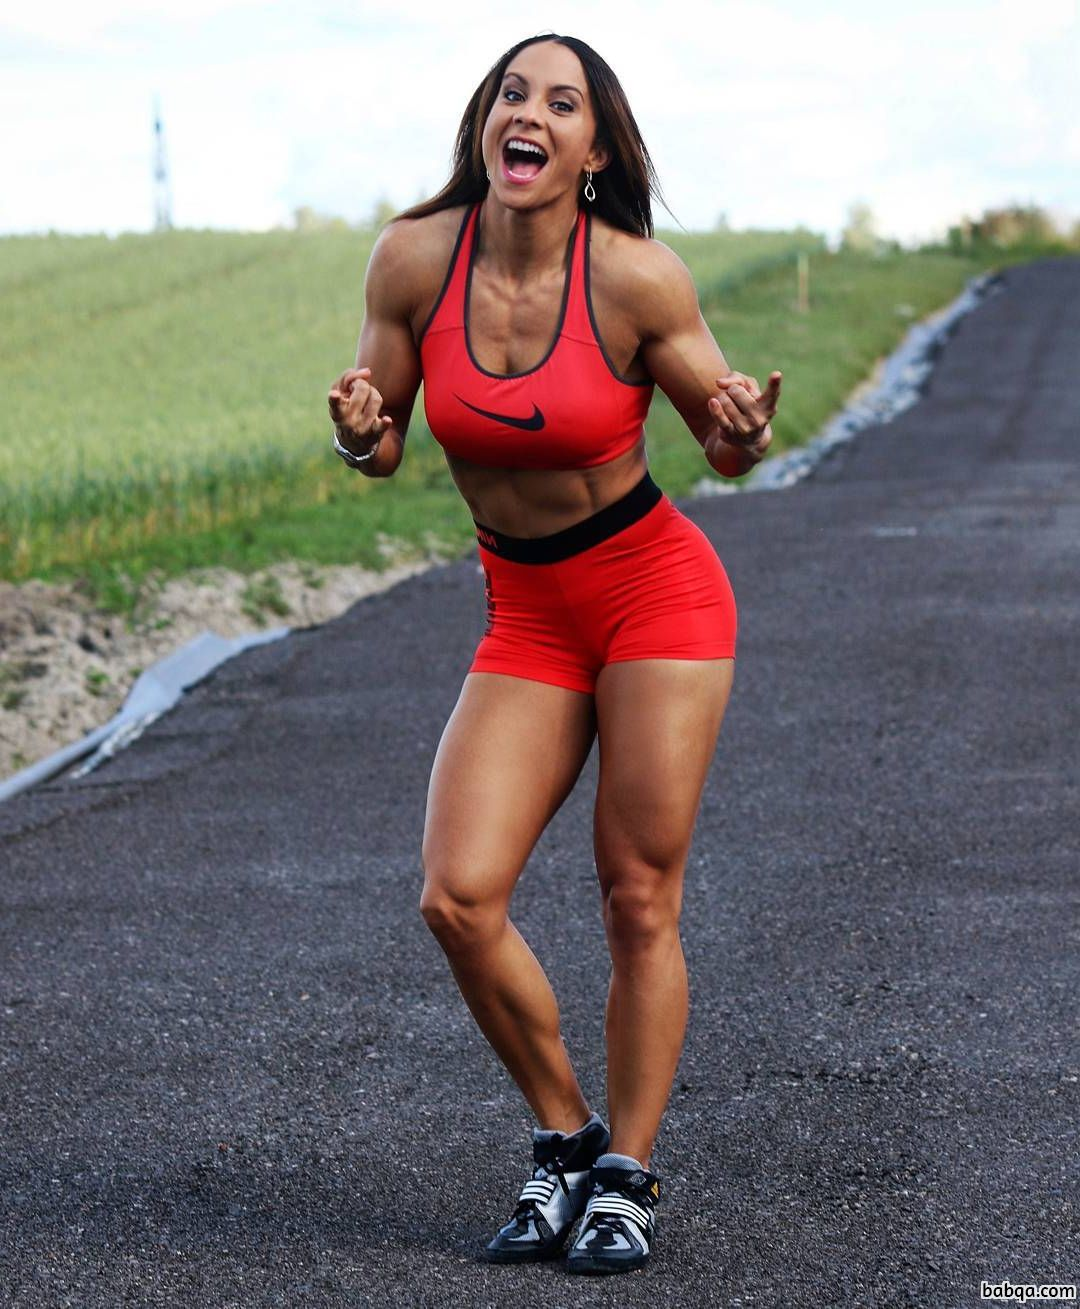 hottest female with strong body and toned booty photo from tumblr